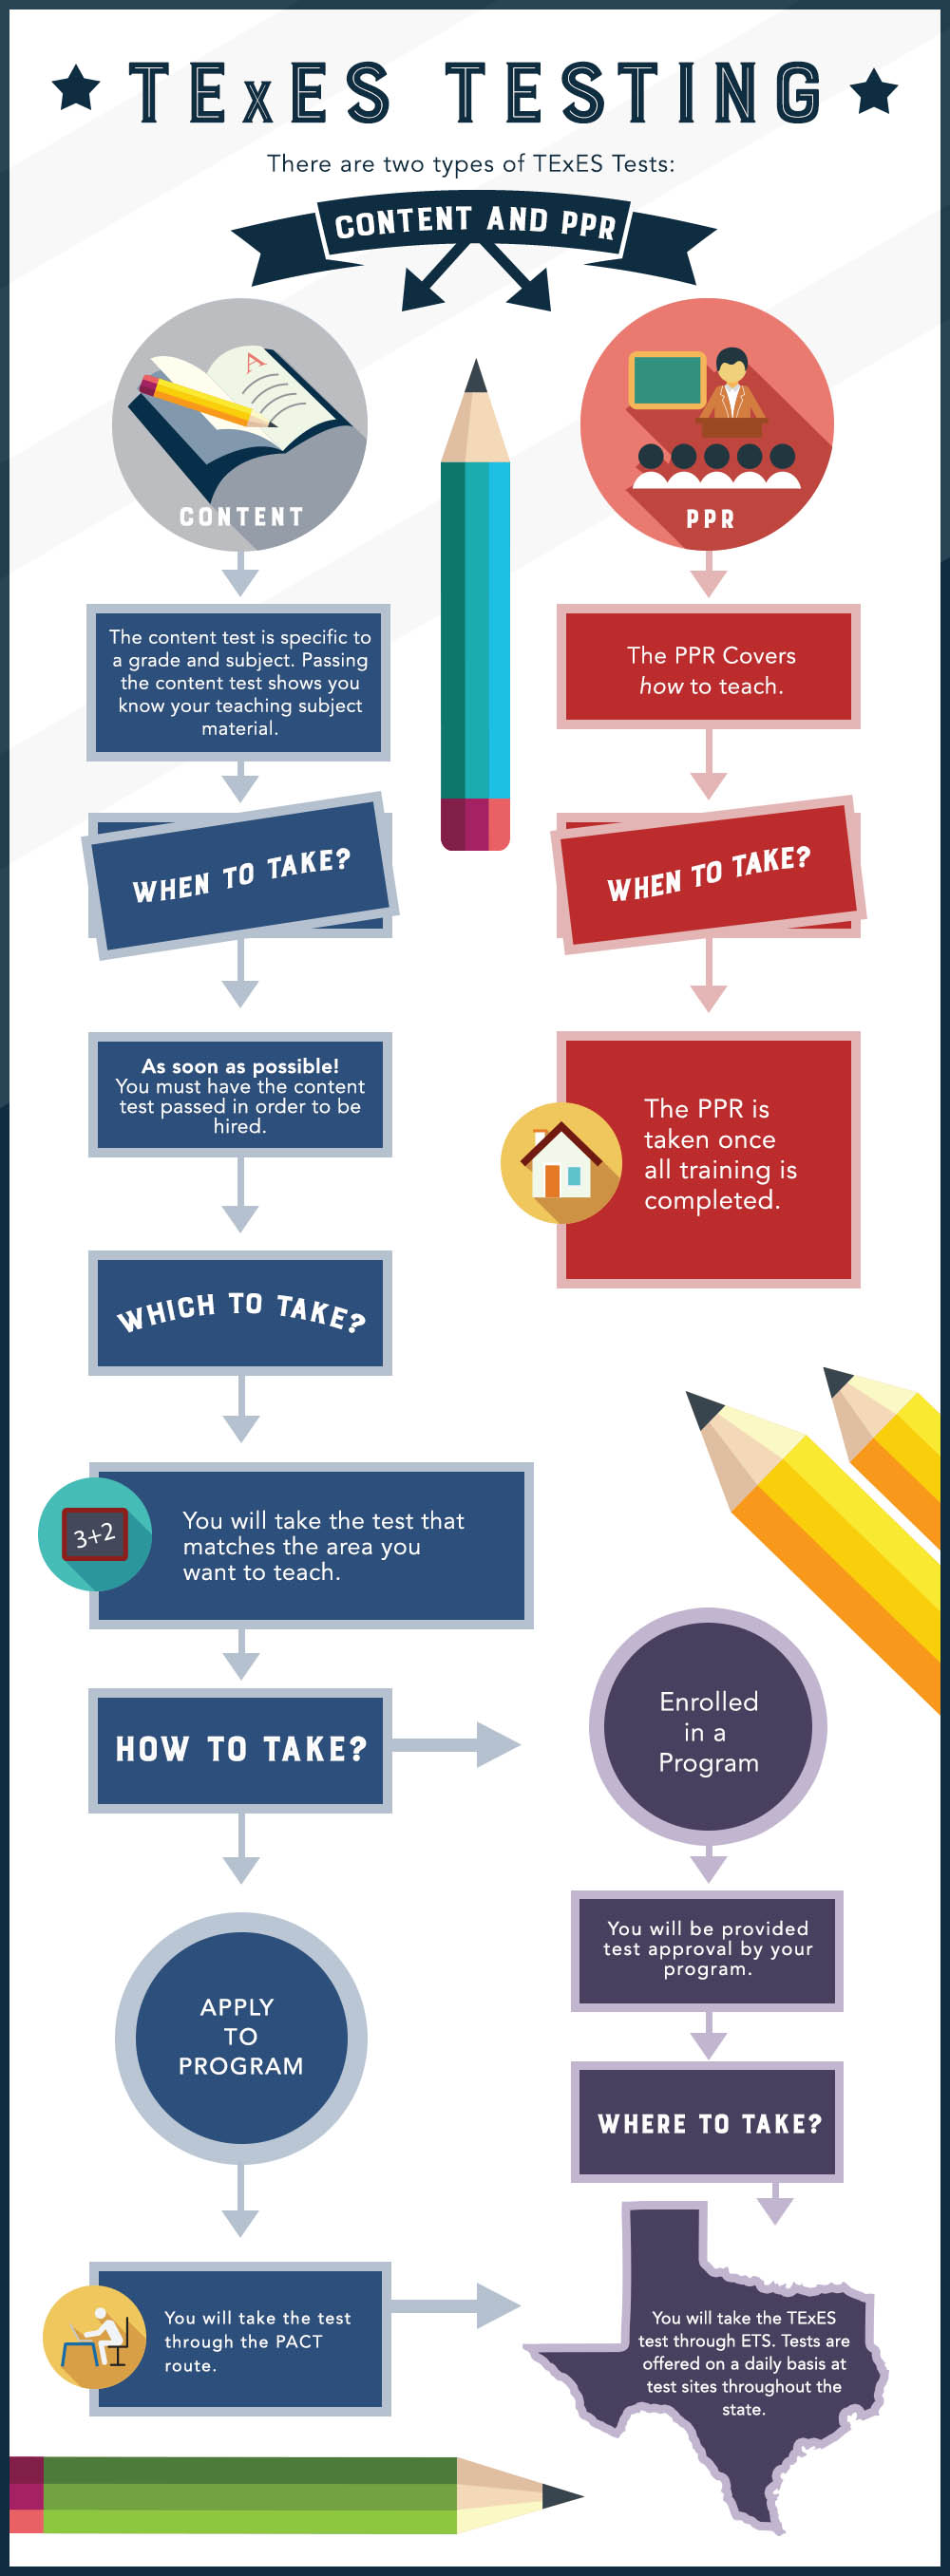 The 1 texes guide simple and easy wfaq texes testing infographic xflitez Choice Image